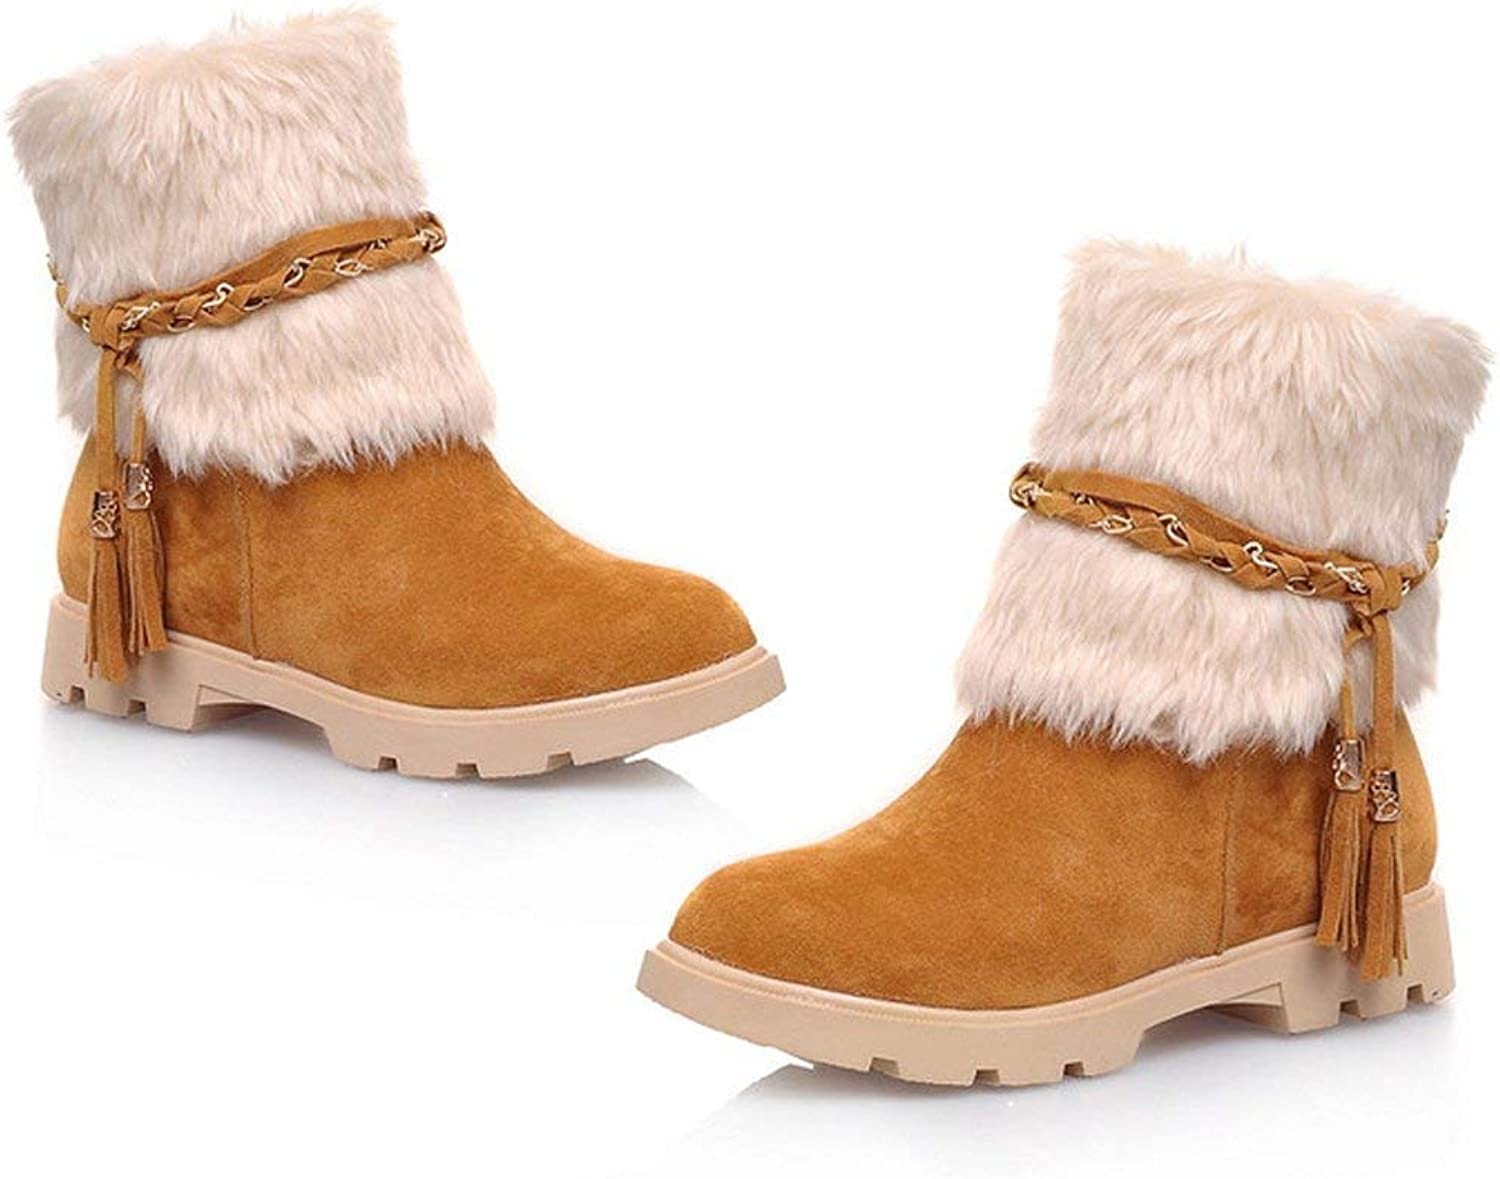 Women's Water Resistant Short Boot Fashion Suede Flat Heel Winter Faux Fur Snow Boots